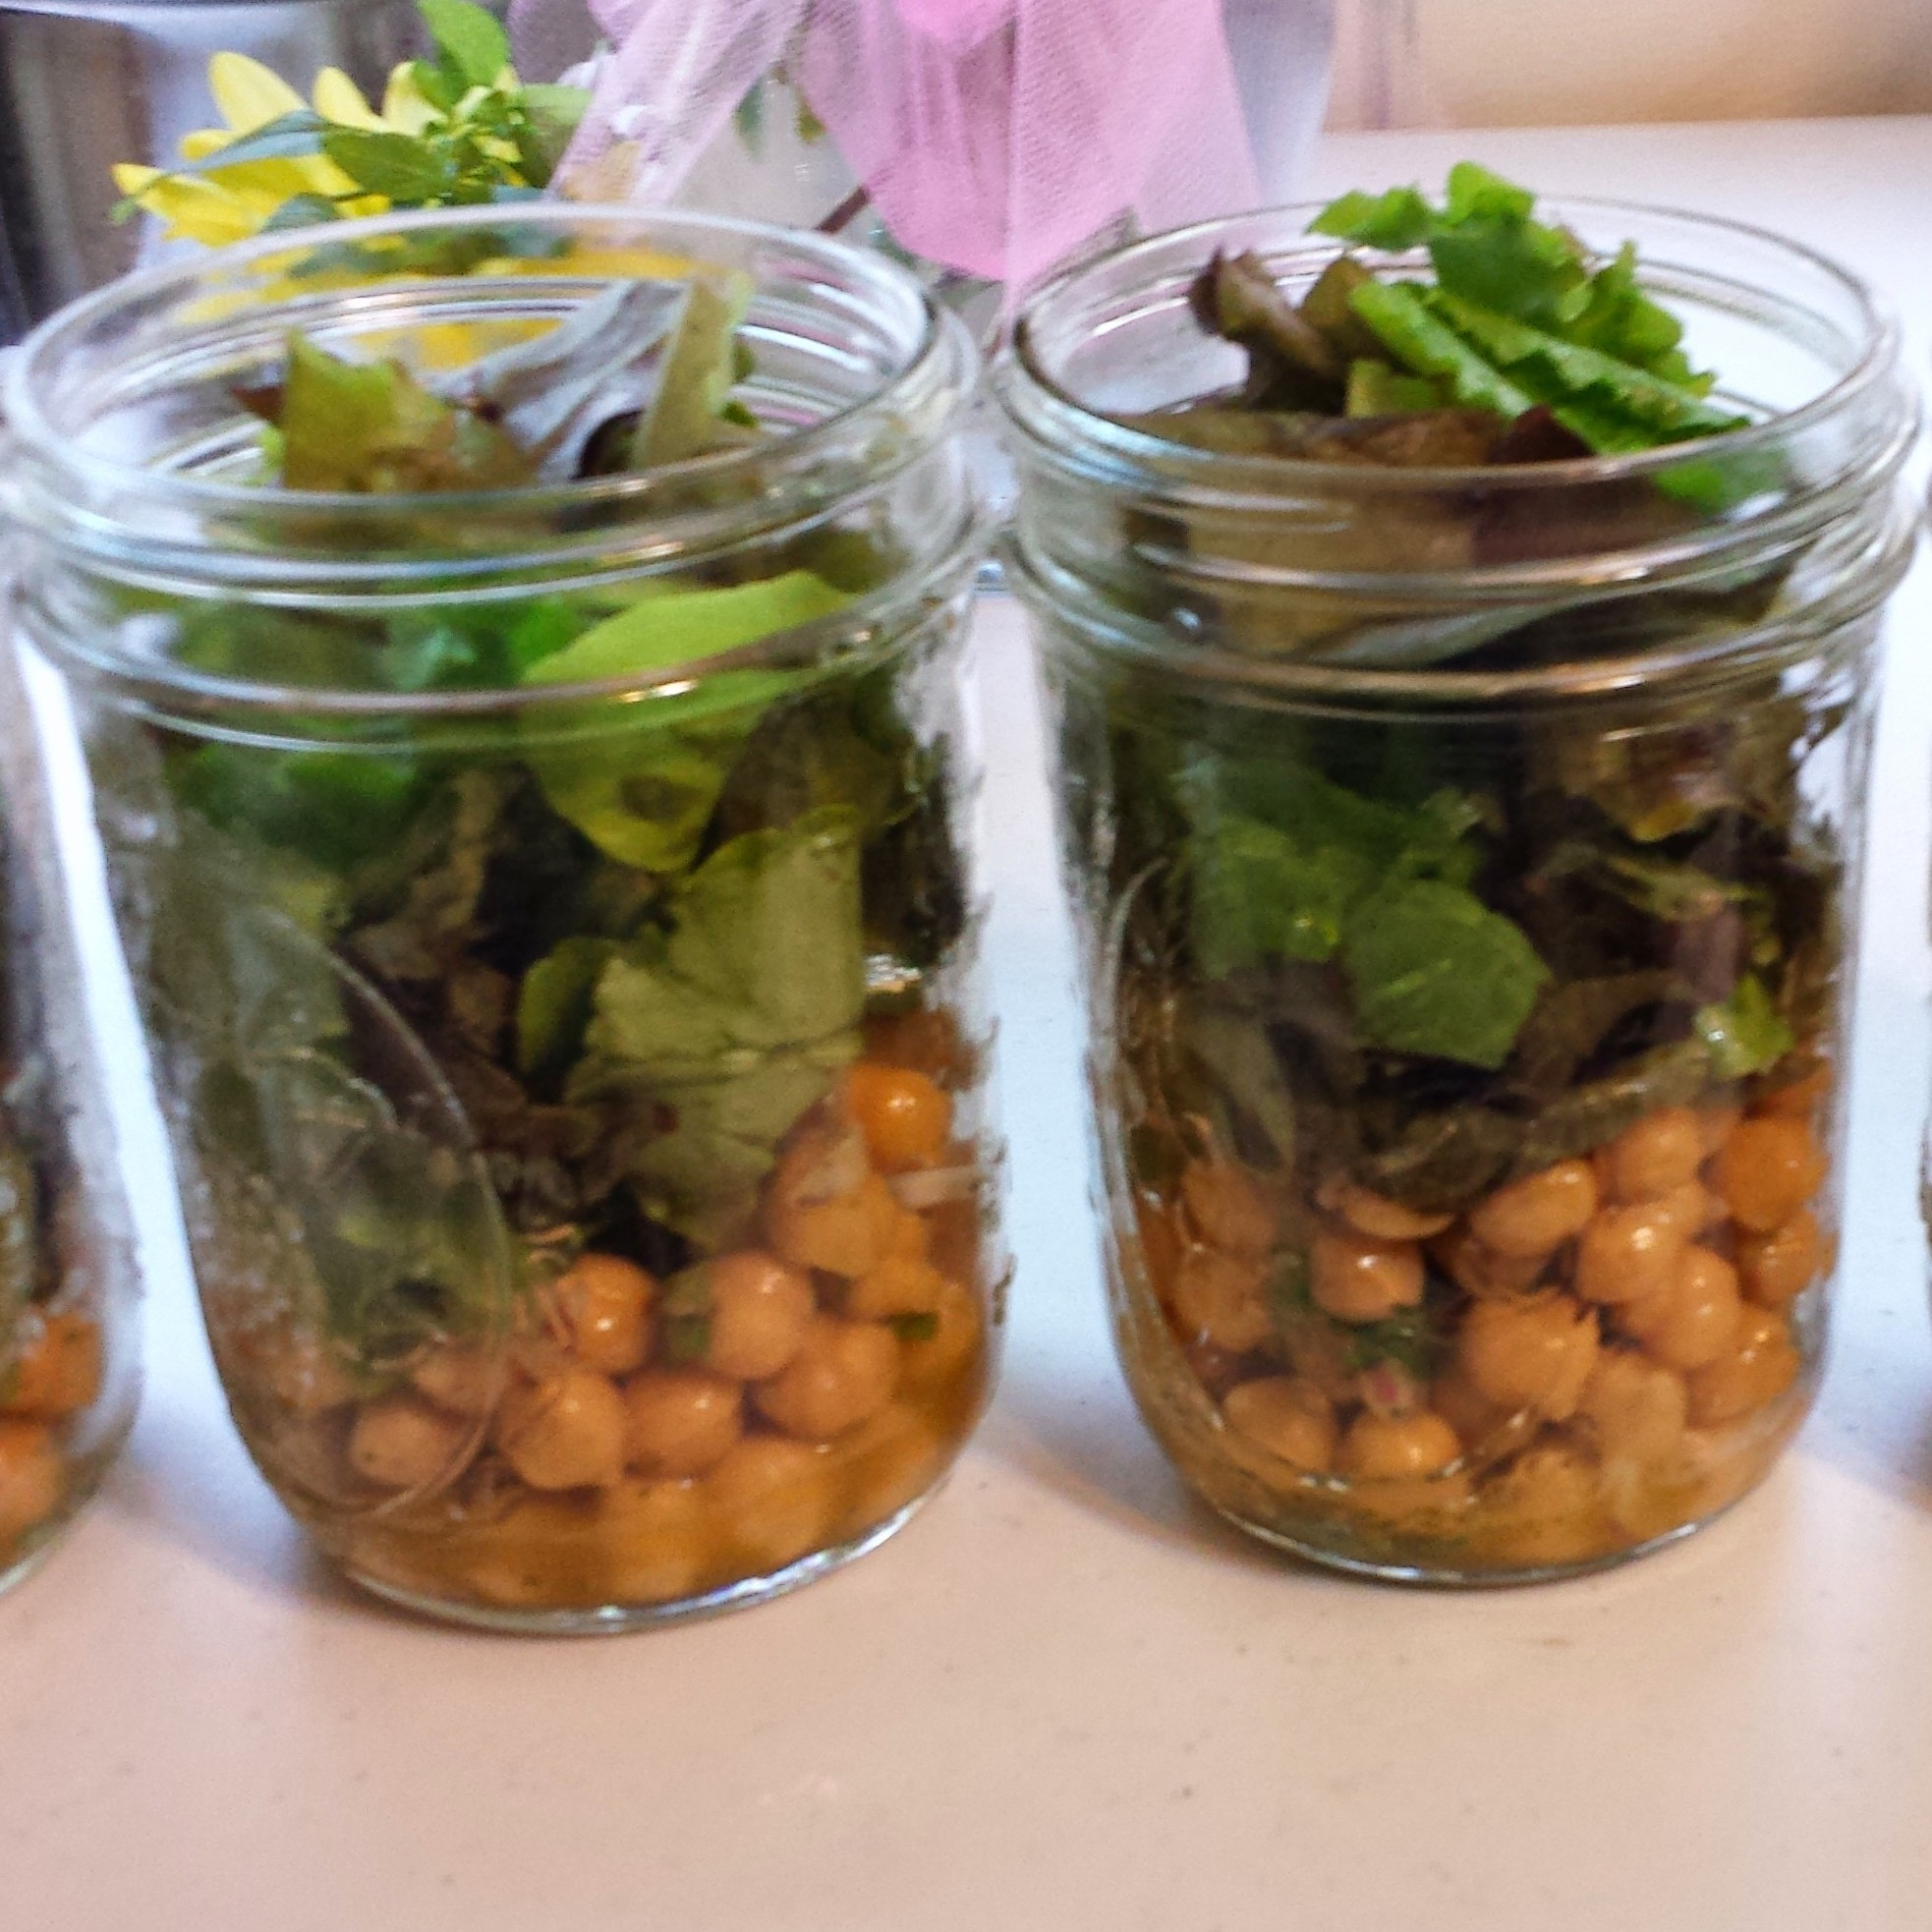 Kale Salad with Chickpeas in a Jar